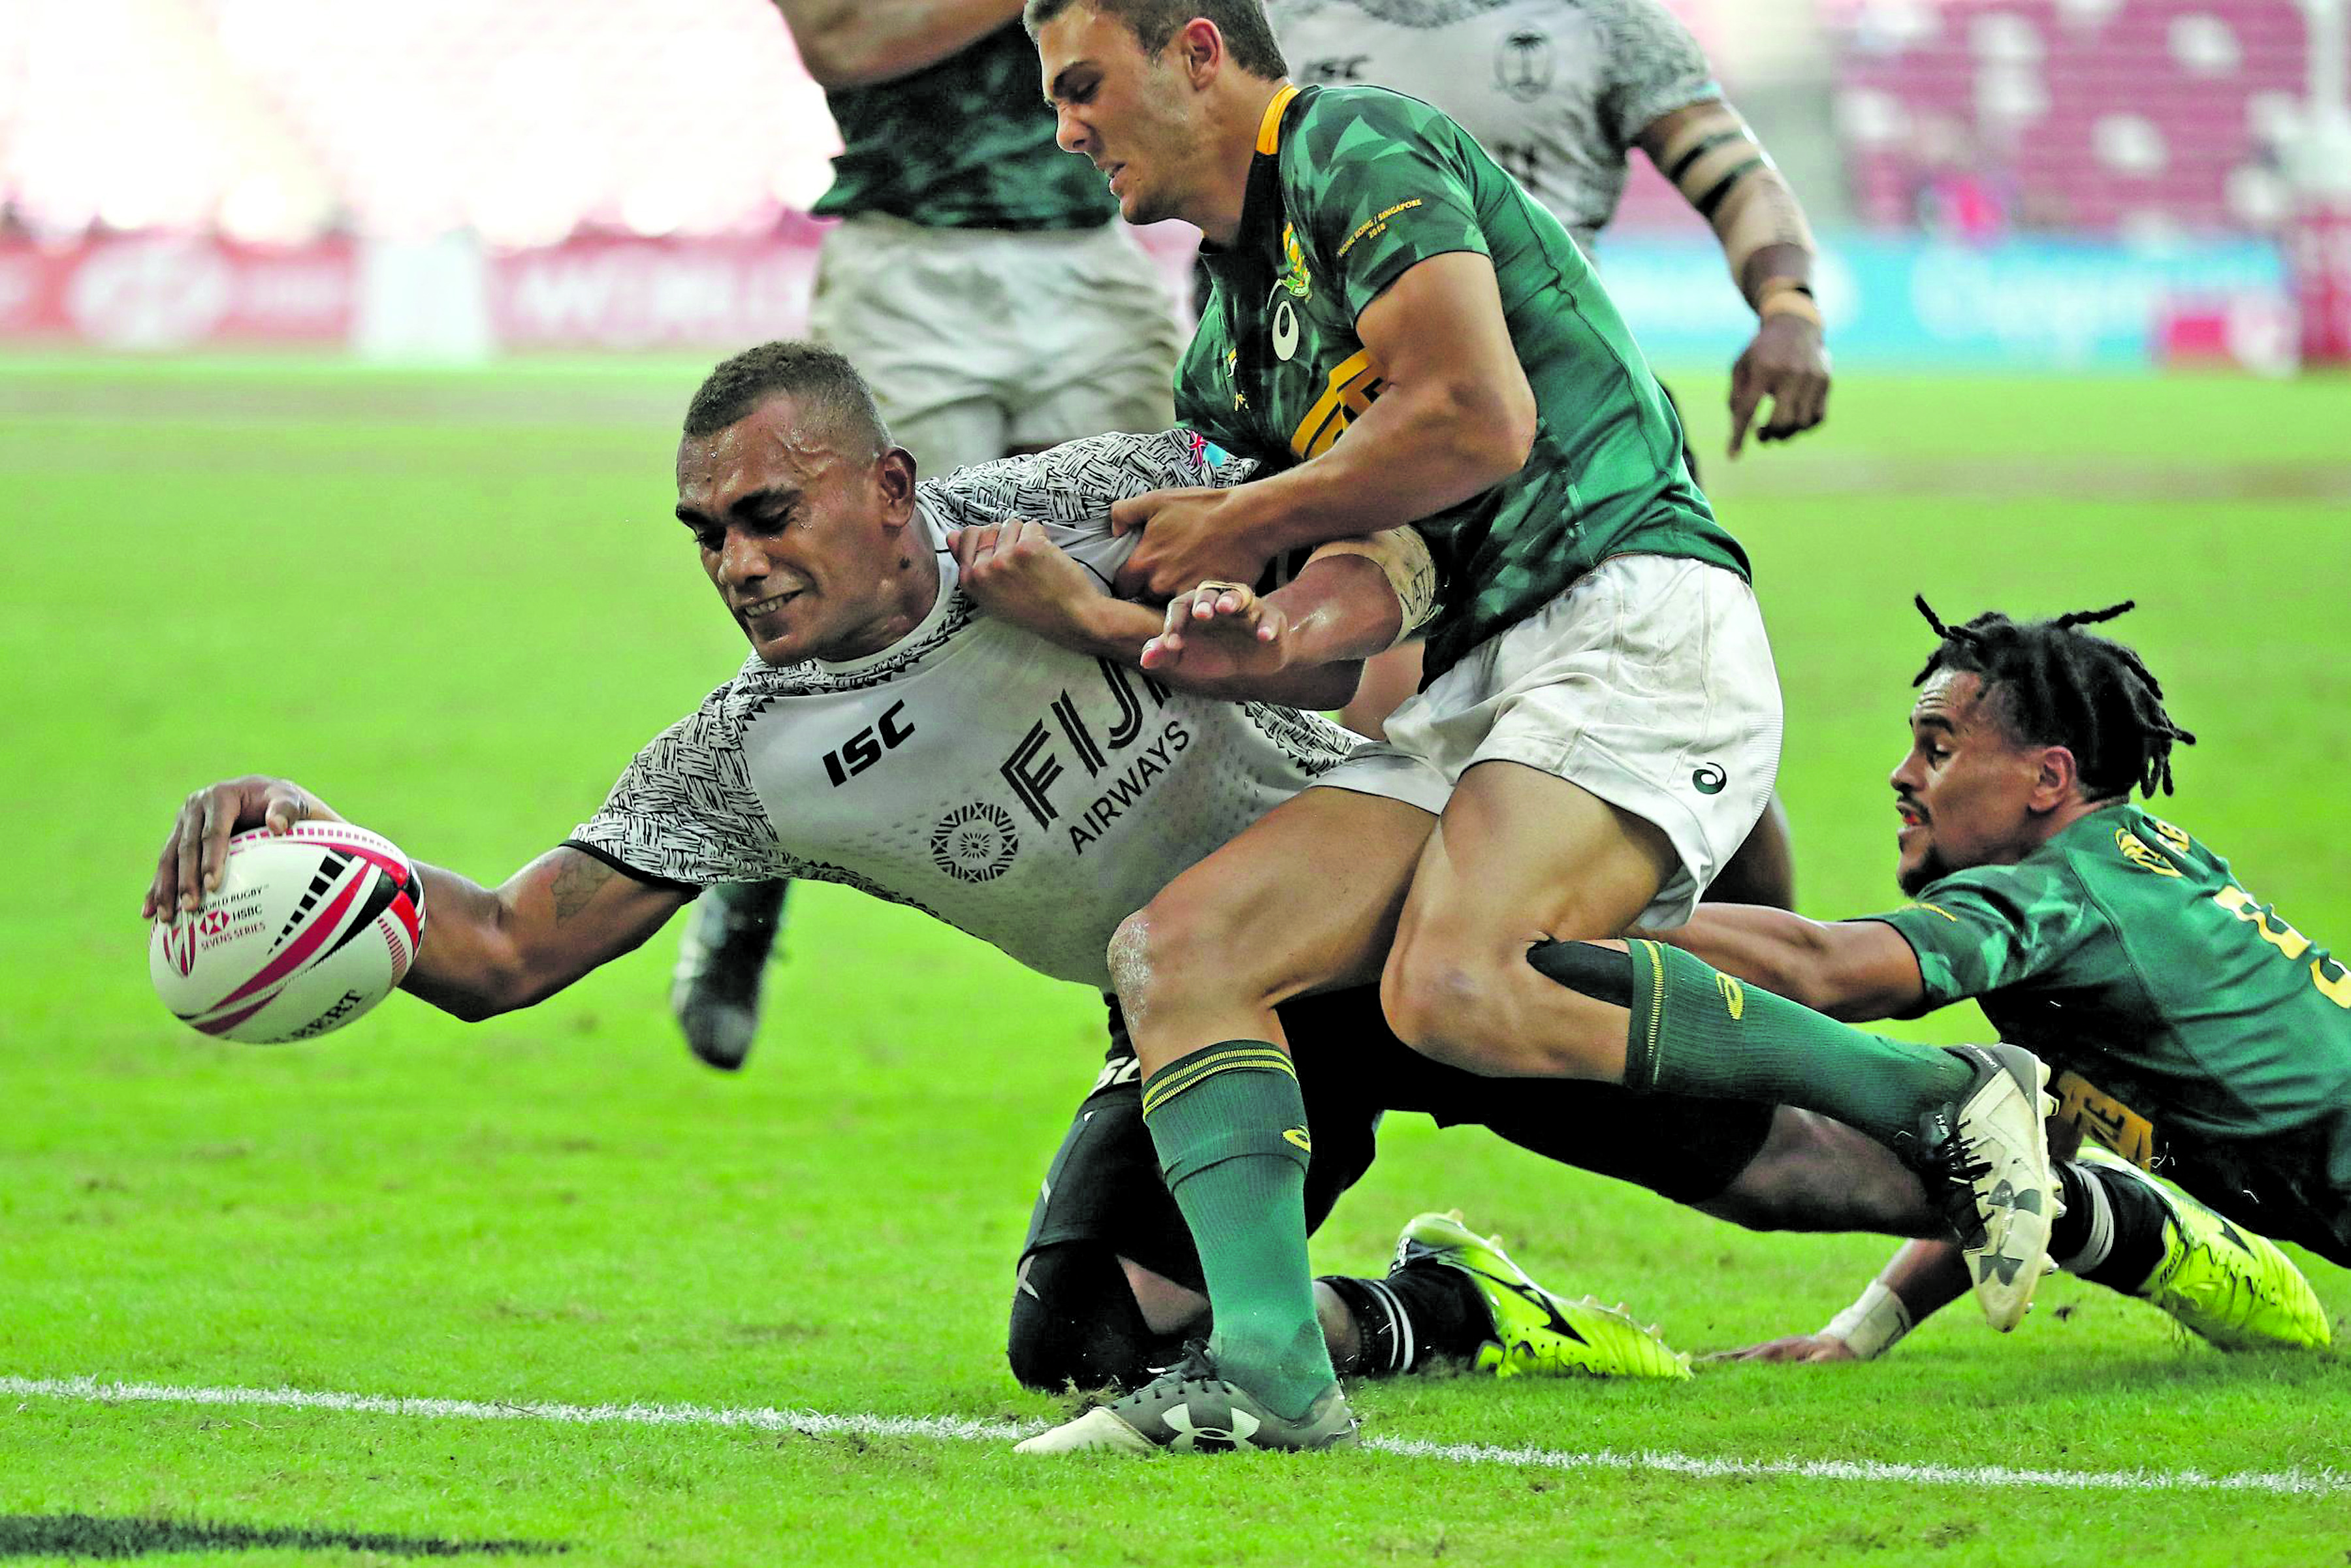 Eroni Sau reaches out for a try against South Africa on day two of the HSBC World Rugby Sevens Series in Singapore on April 29, 2018.  Photo: World Rugby